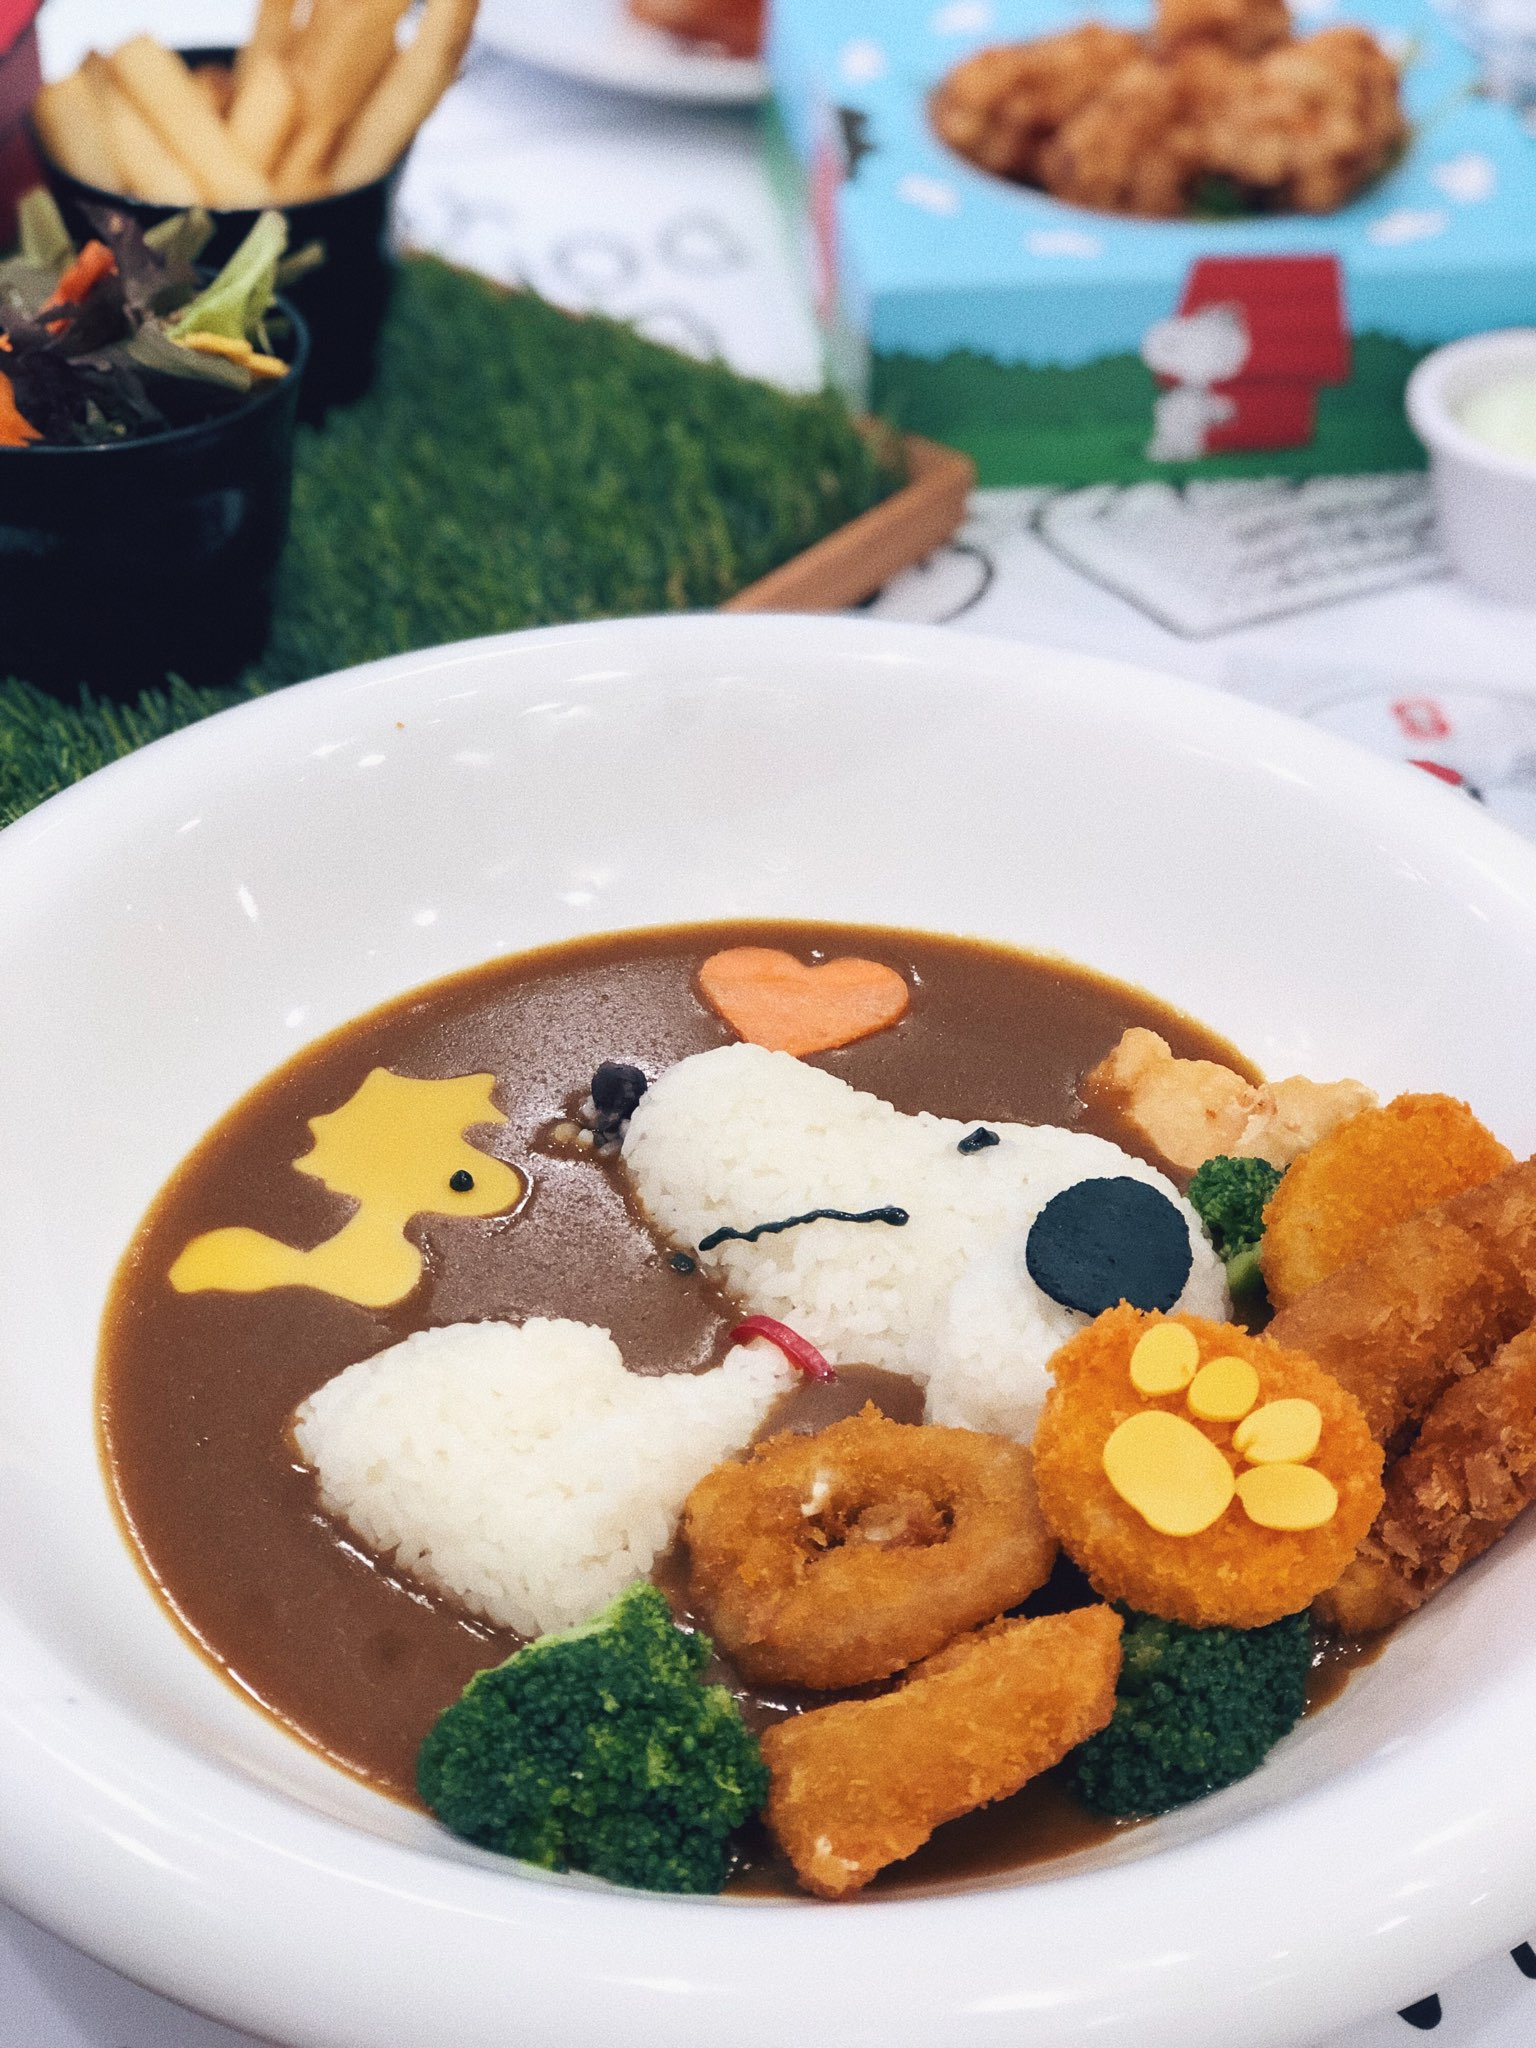 Snoopy Sizzling Seafood Tempura With Japanese Curry Rice ($24.90)